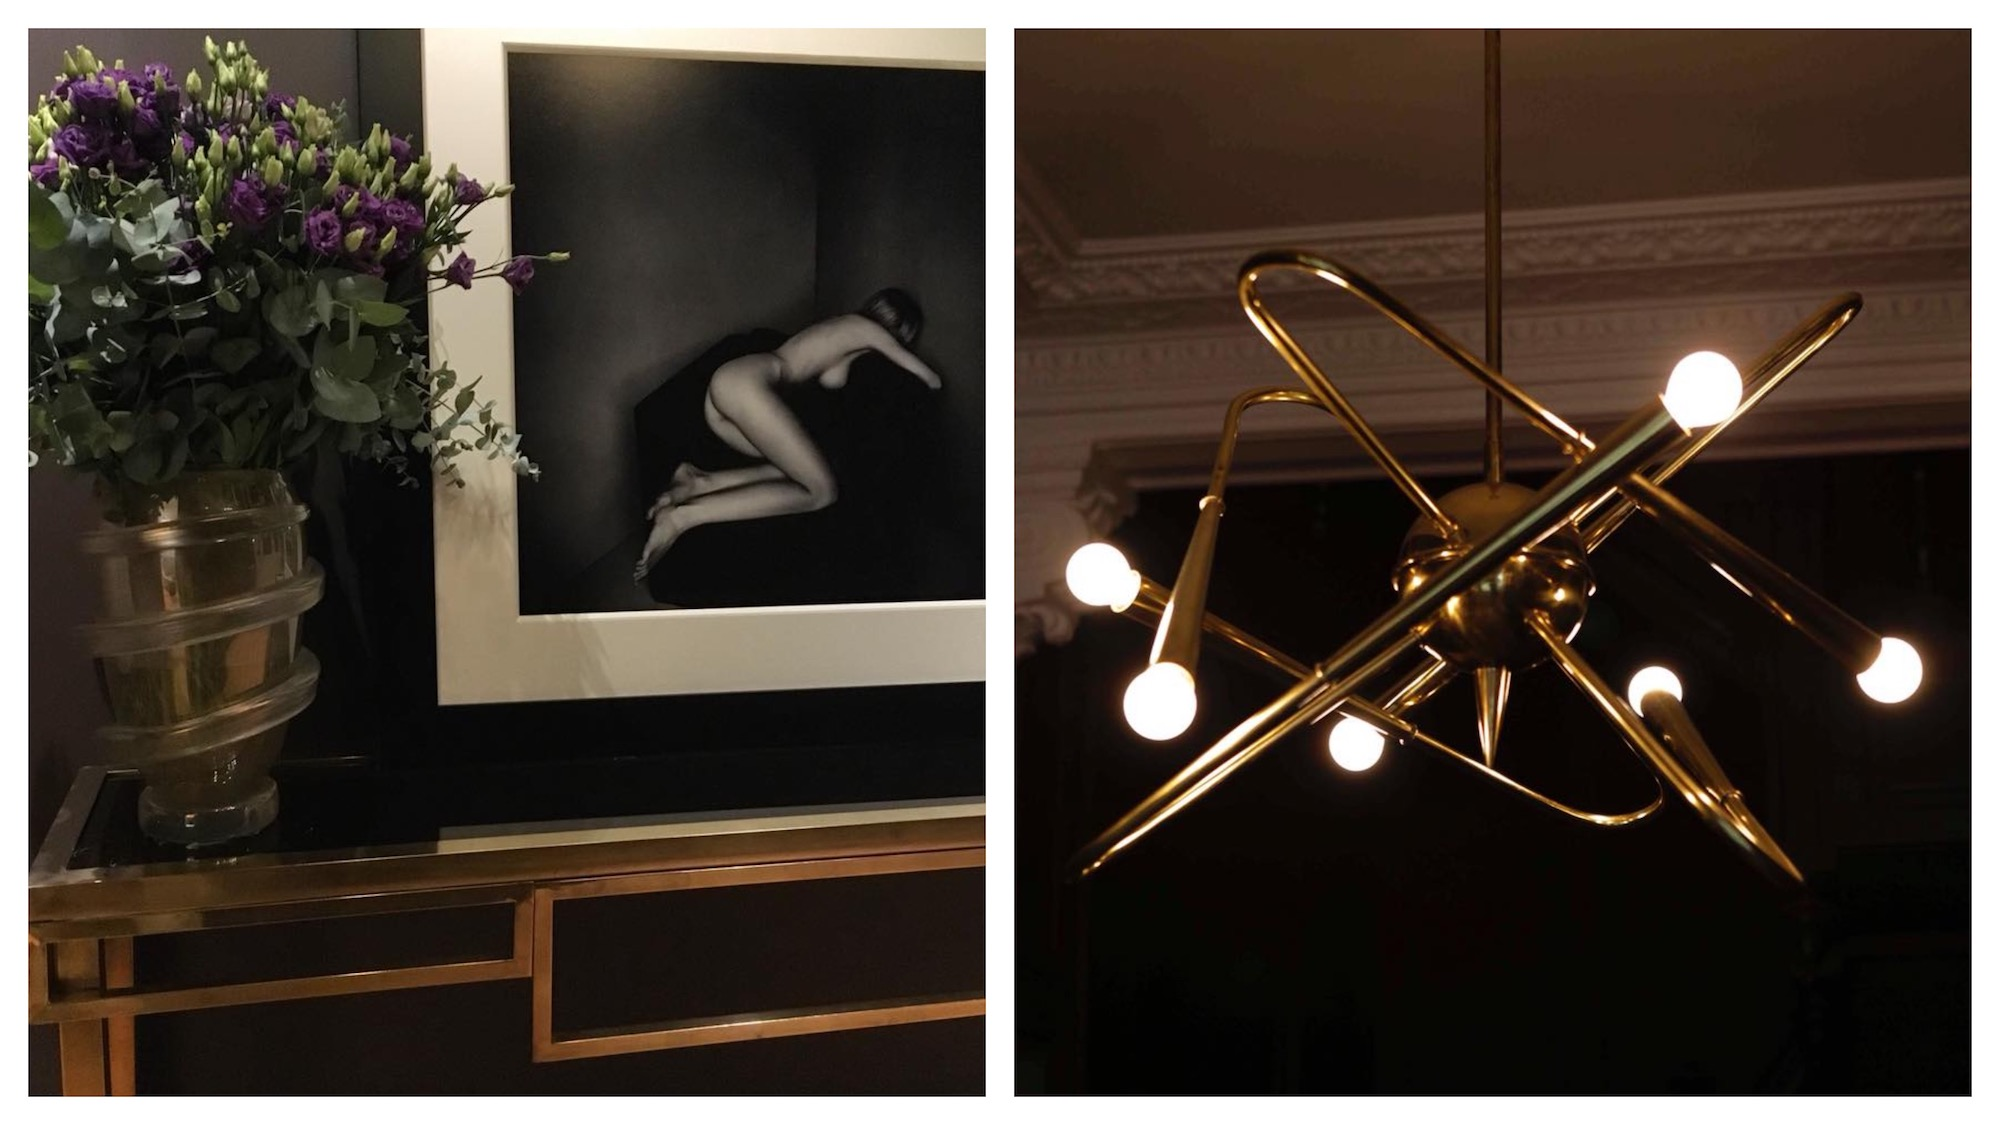 Where to shop in Paris: a slinky vase with purple flowers and an arty picture of a naked woman (left) and a design brass lighting fixture (right) at secret luxury Paris concept store the Society Room.